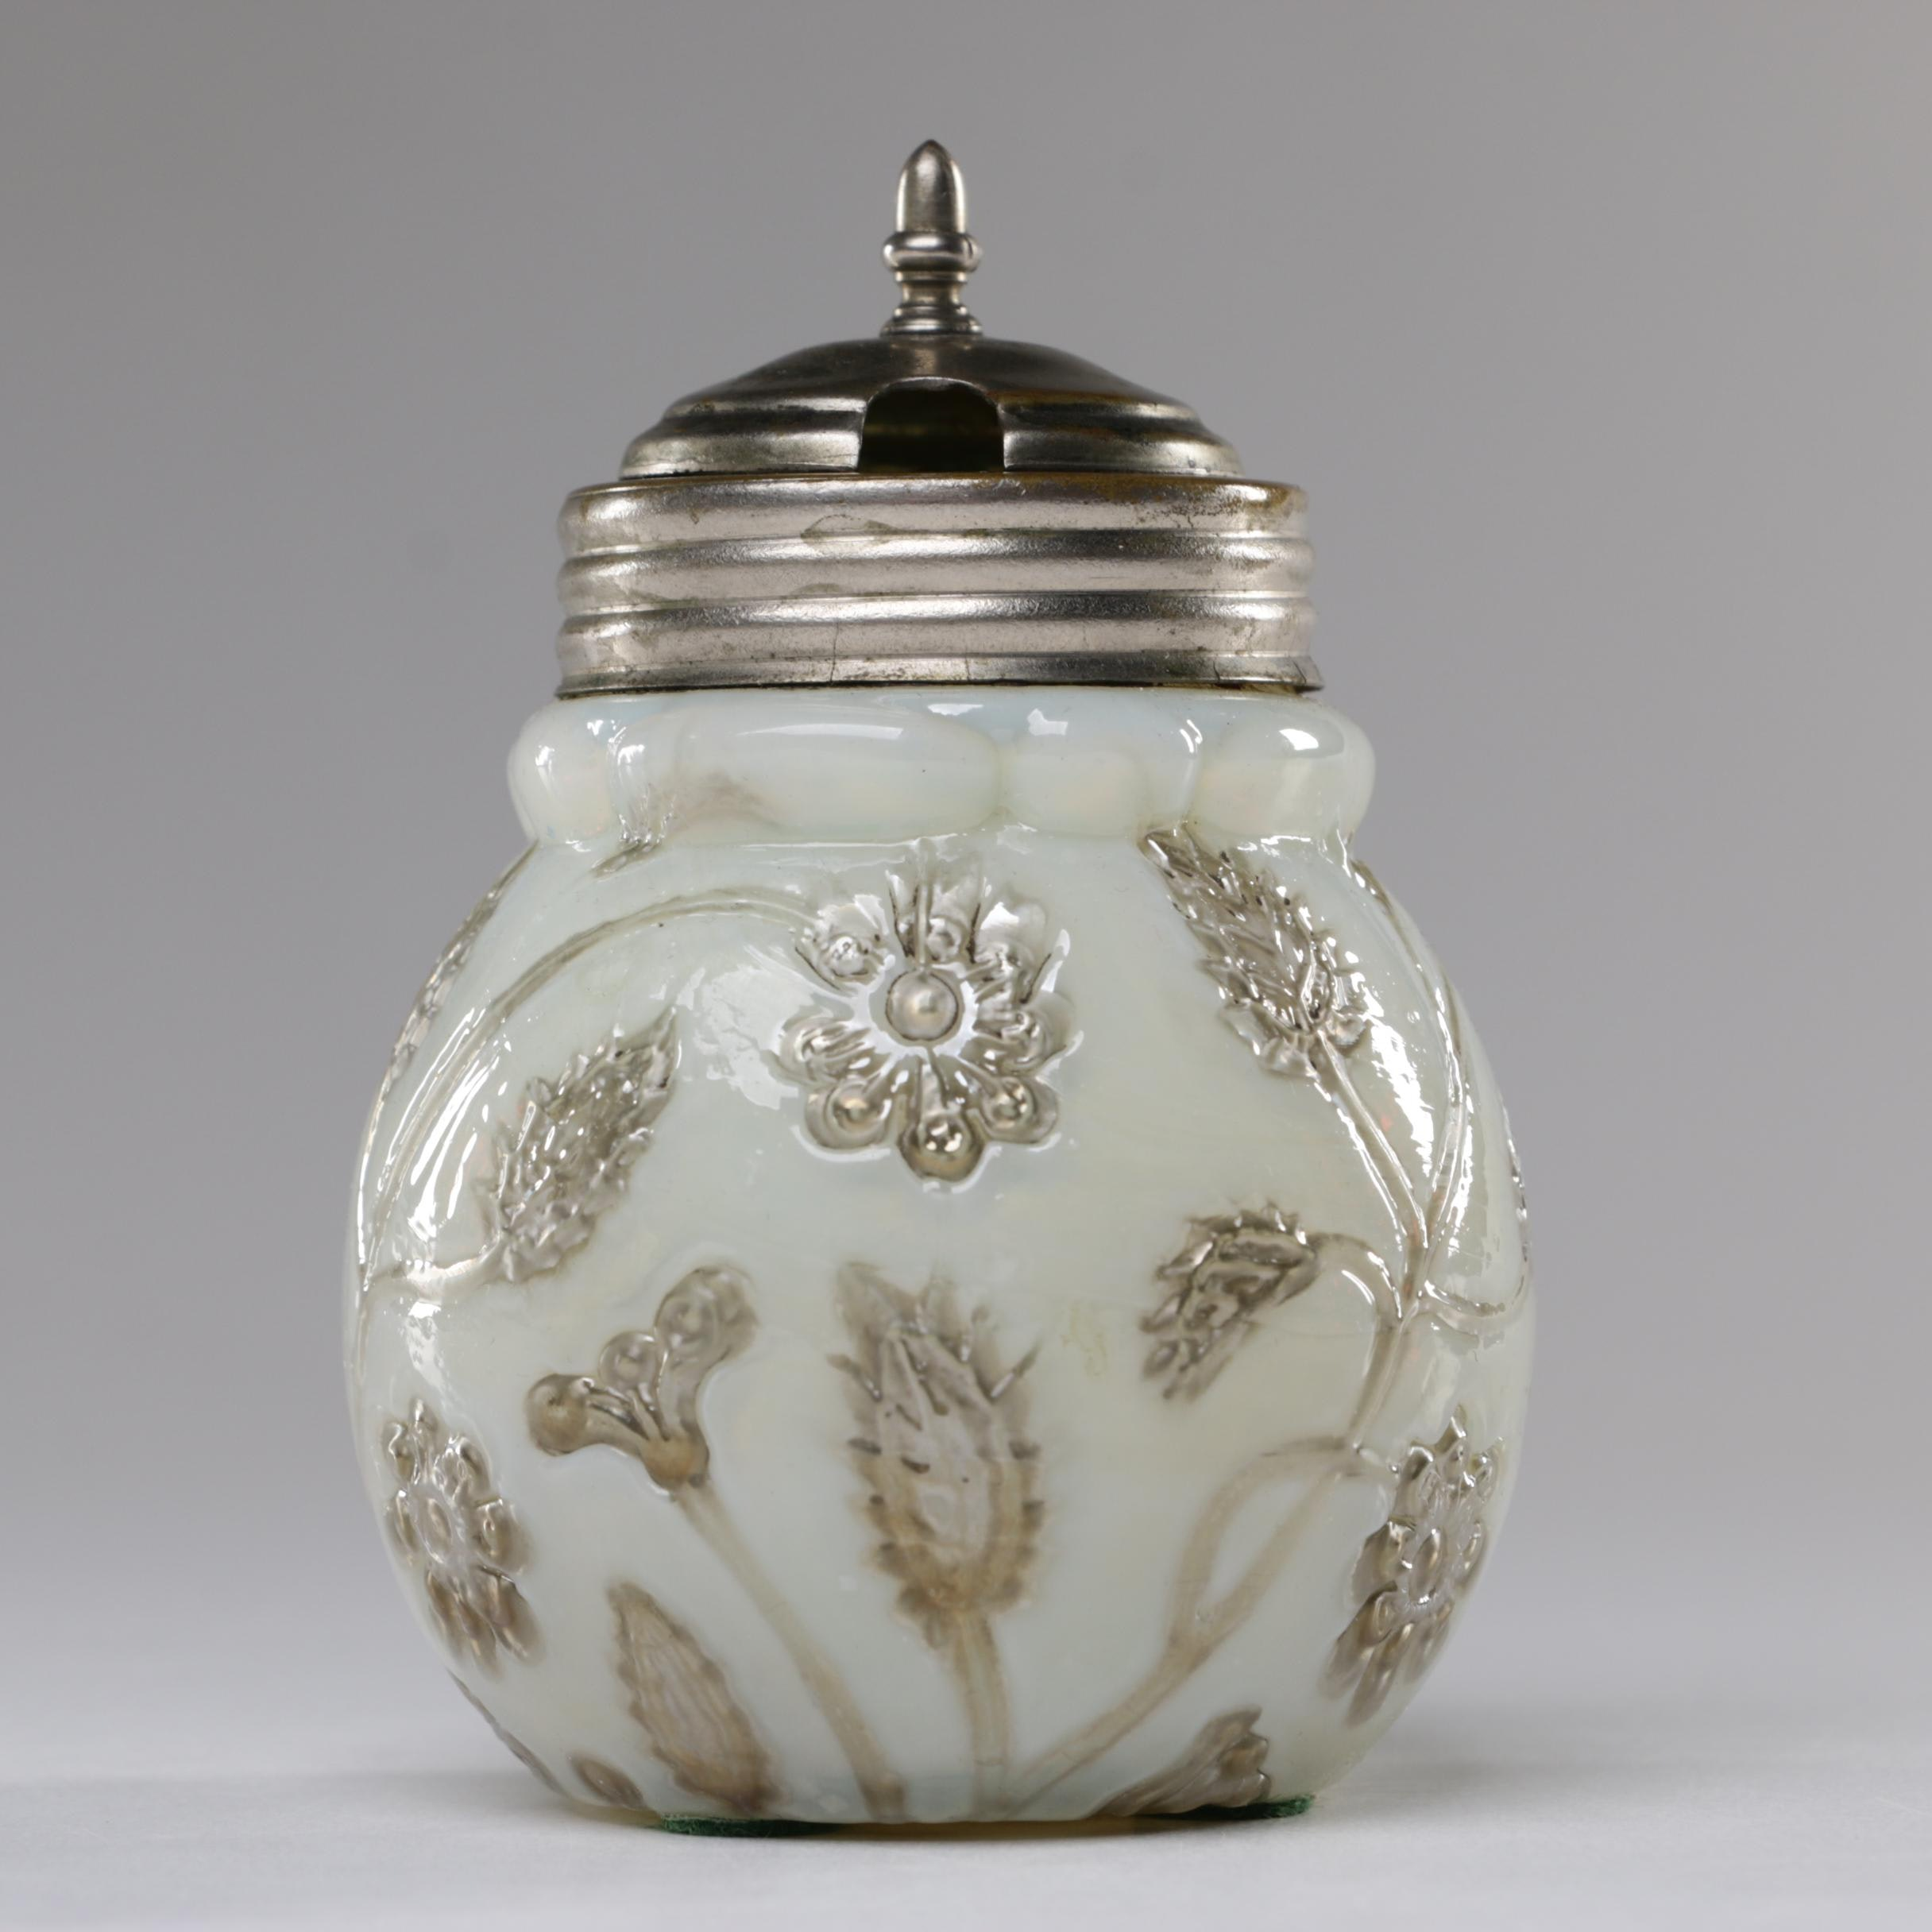 Findlay Onyx Opalescent Glass Mustard Pot, 1880-1891